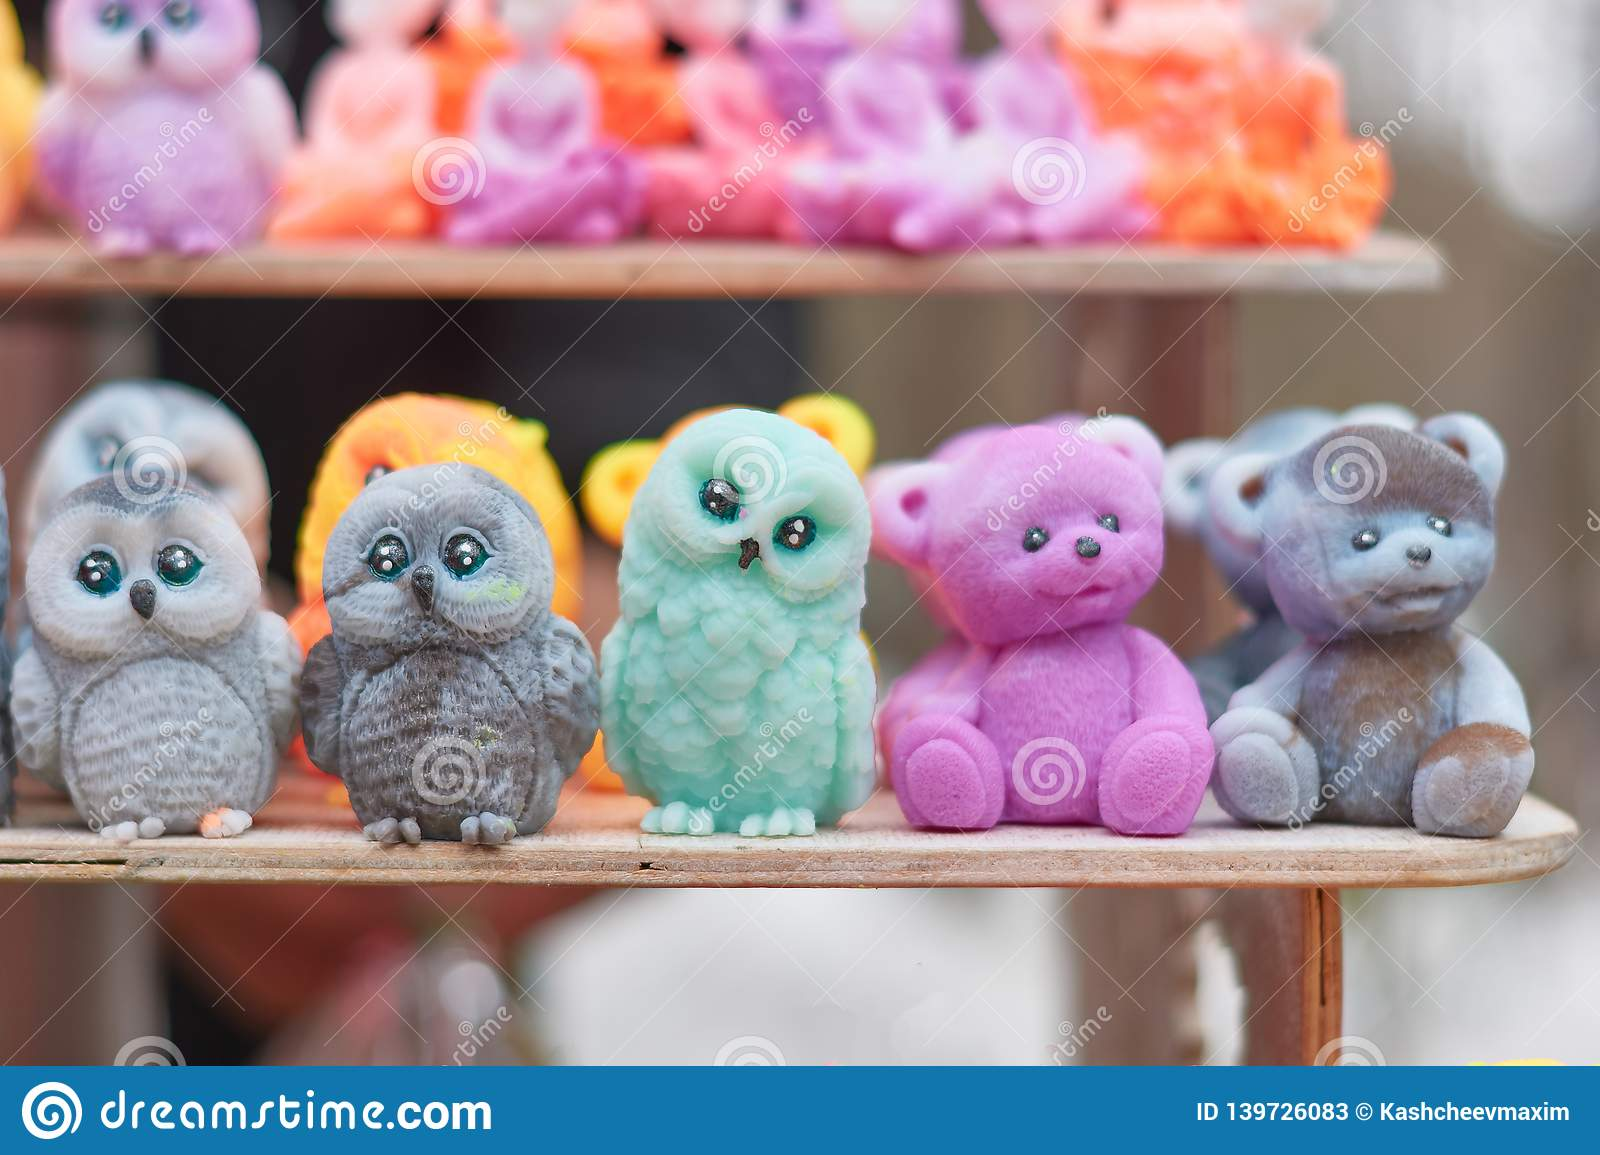 Close up image of owls made of soap